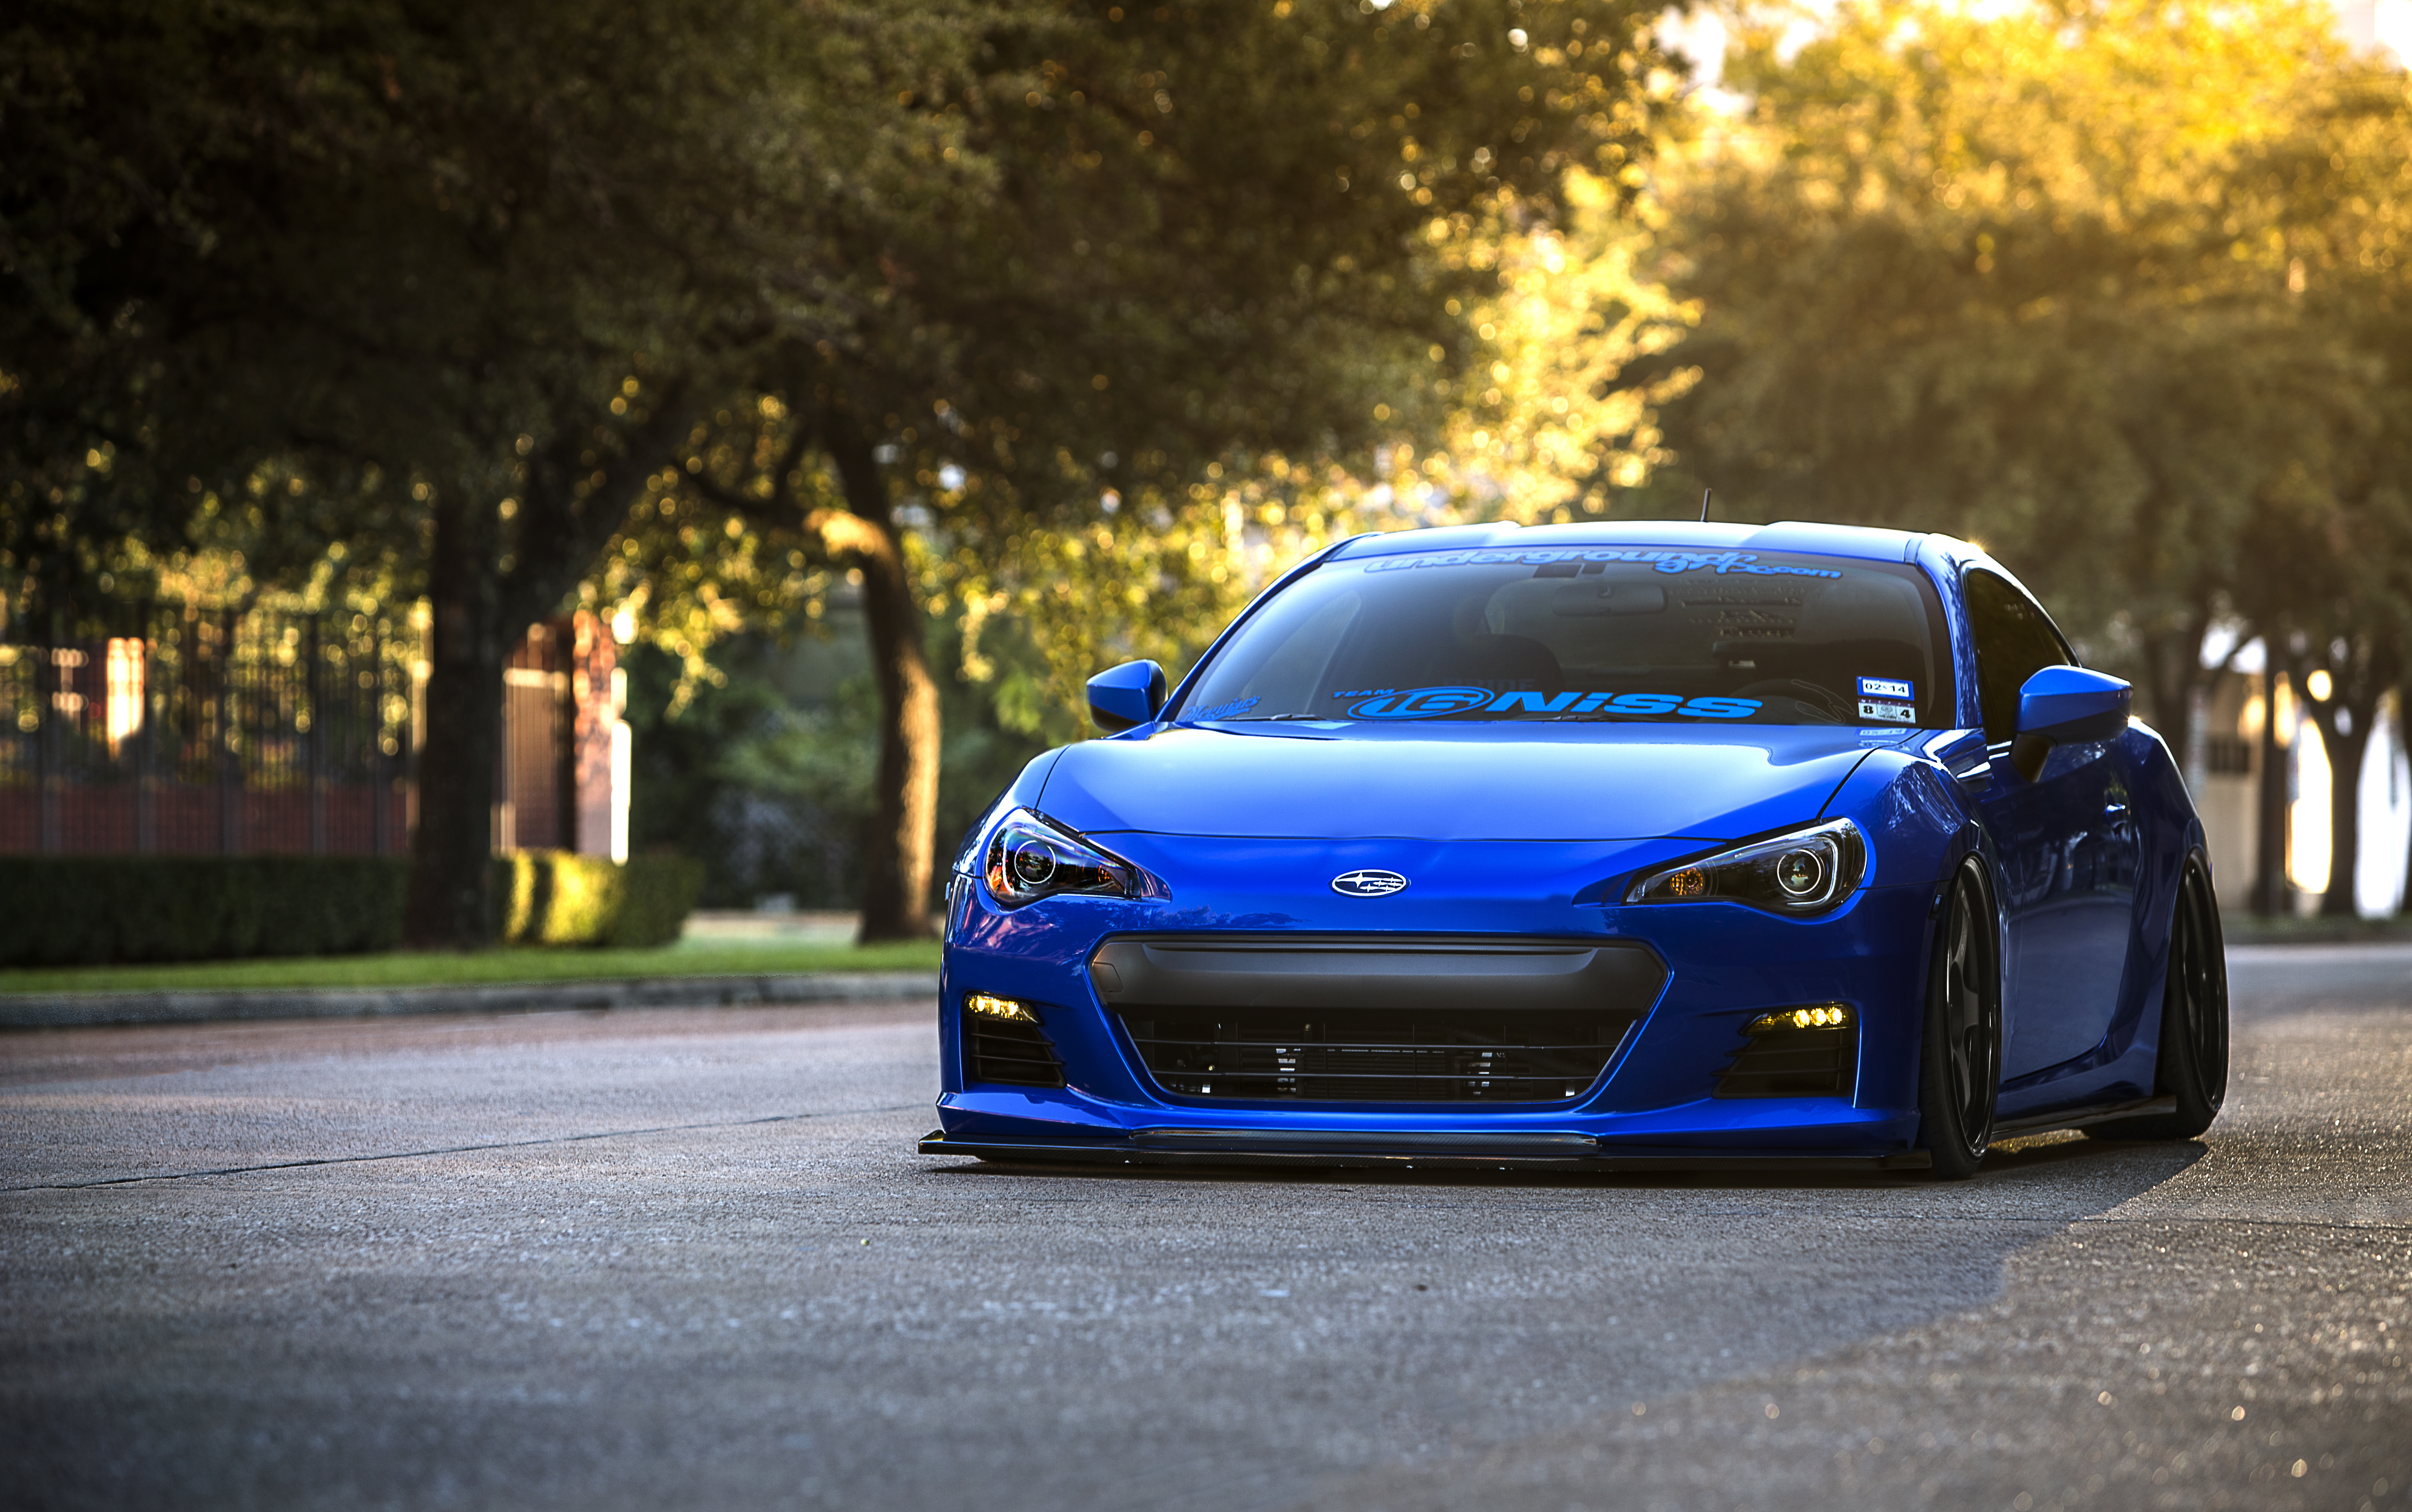 Subaru Brz HD Cars 4k Wallpapers Images Backgrounds Photos And